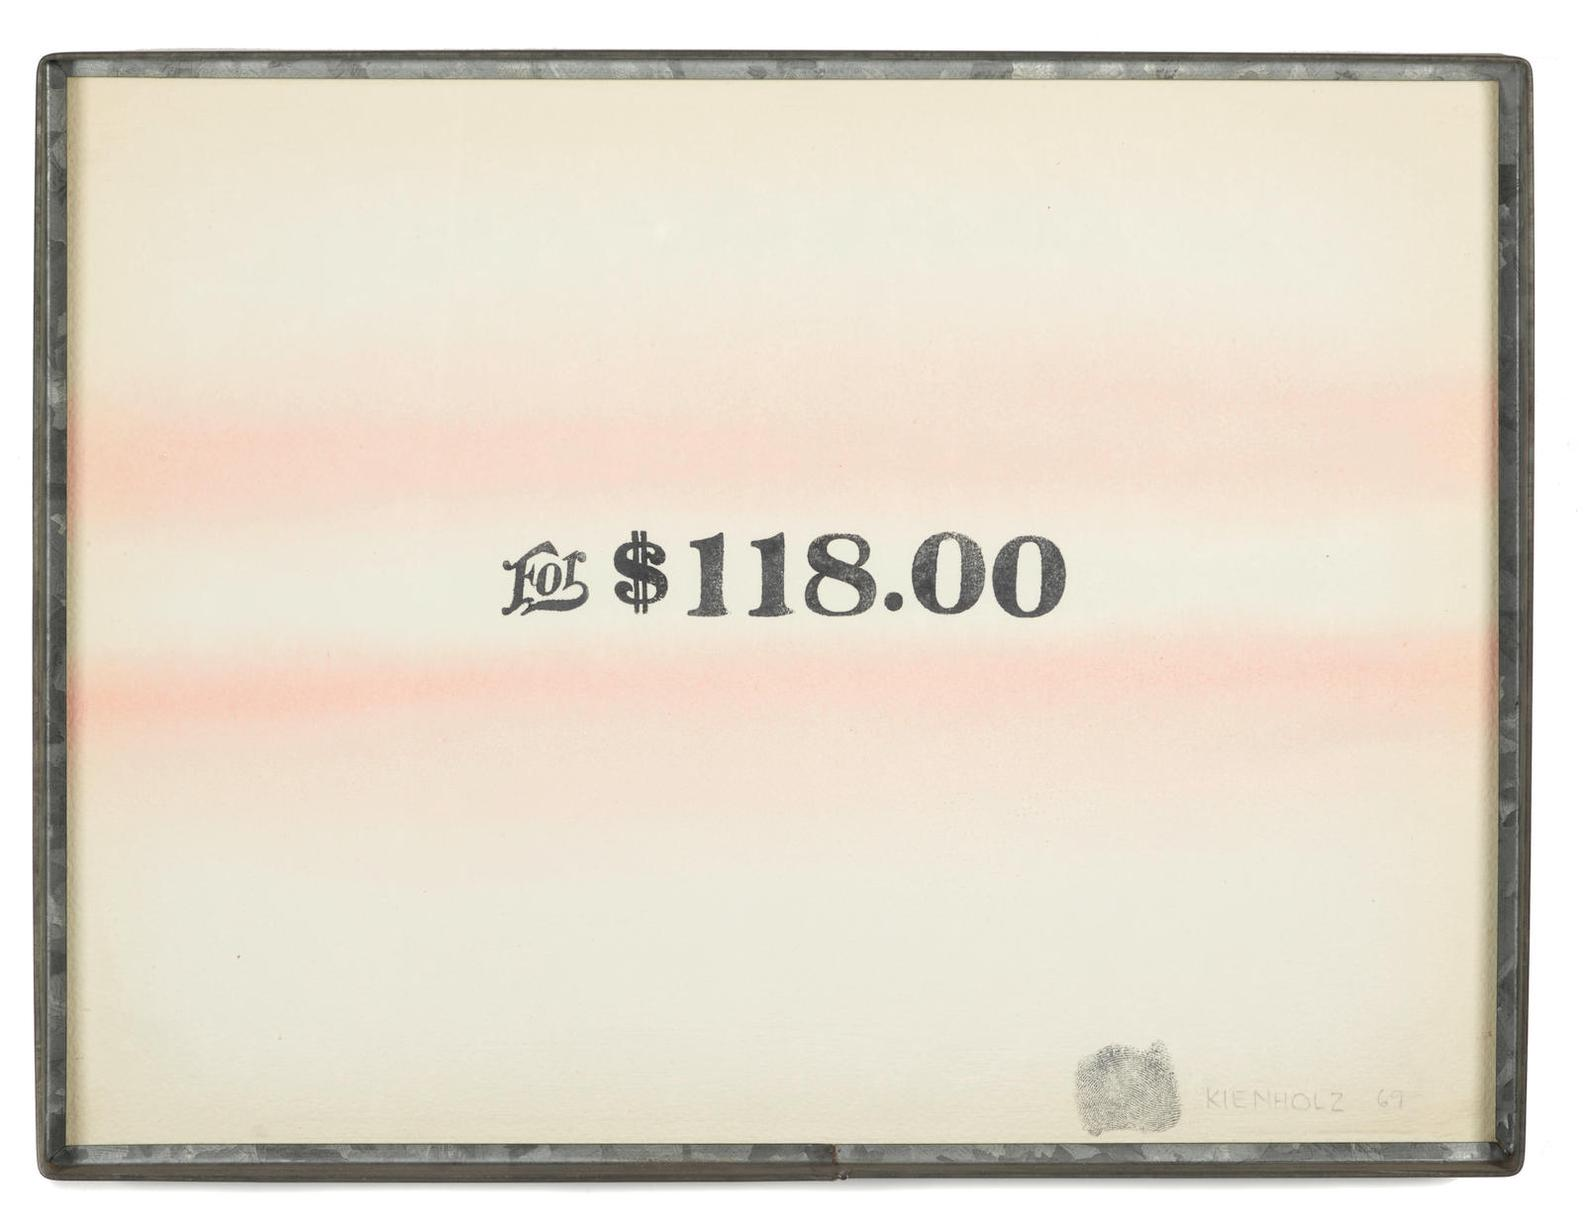 Edward Kienholz-For $118.00-1969